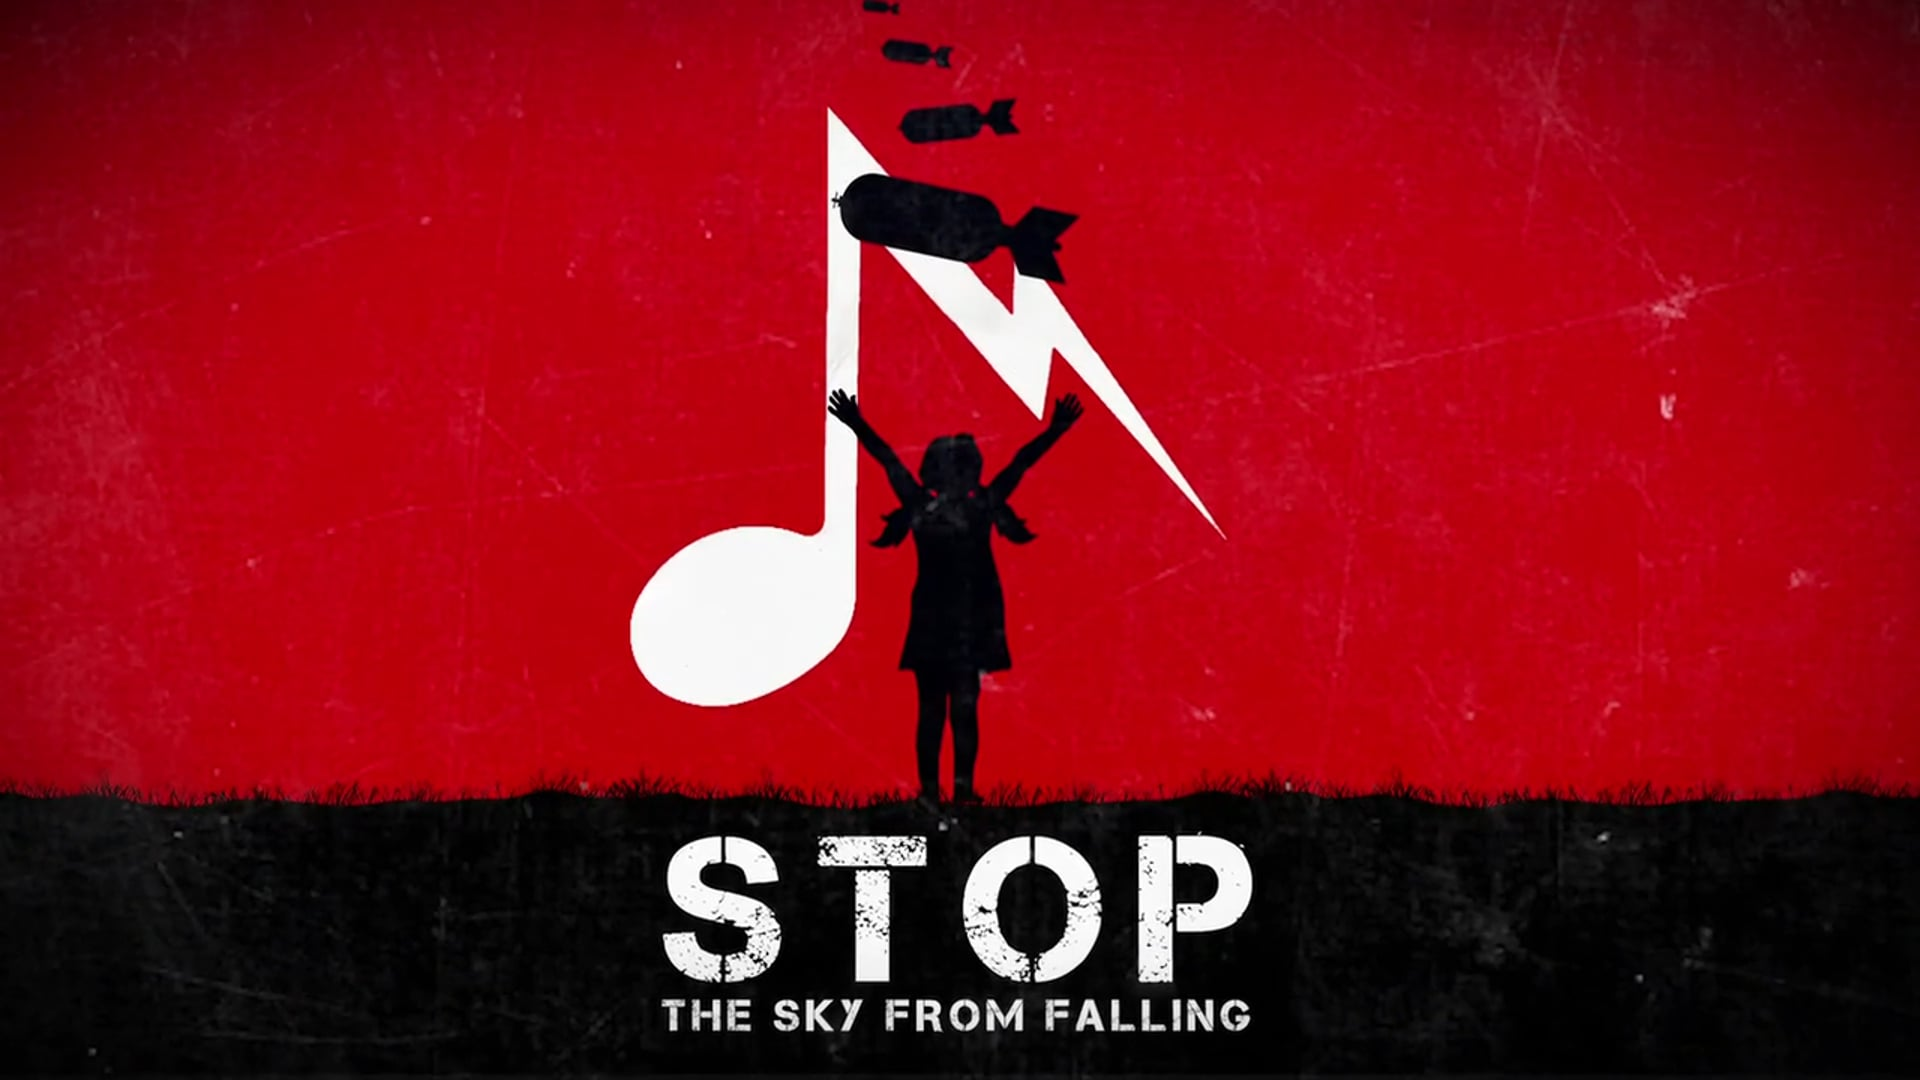 DEUCE & CHARGER - STOP THE SKY FROM FALLING